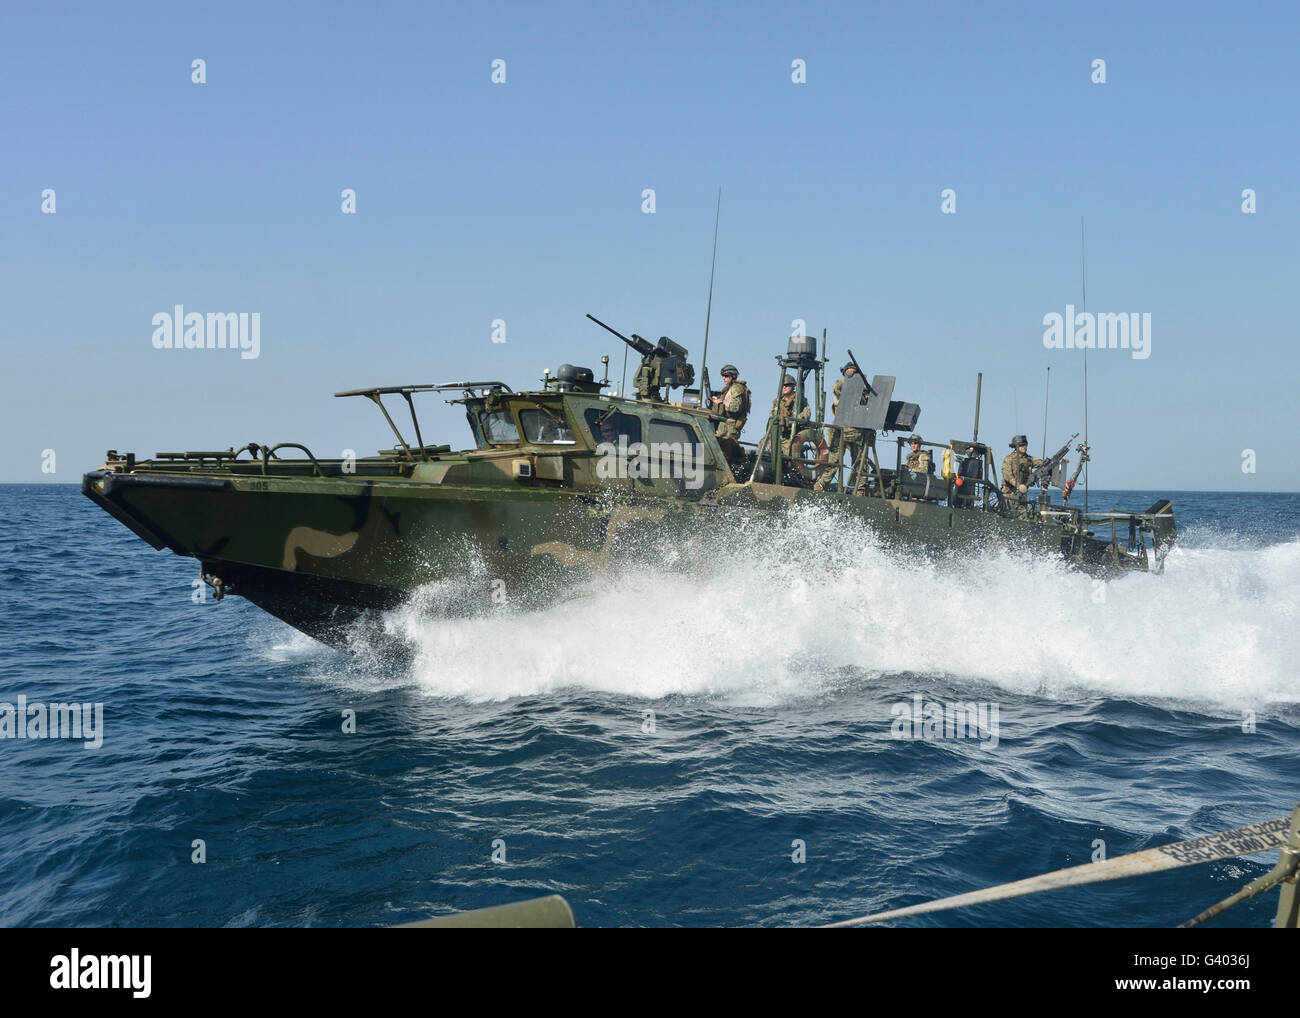 A riverine command boat transits open water. - Stock Image